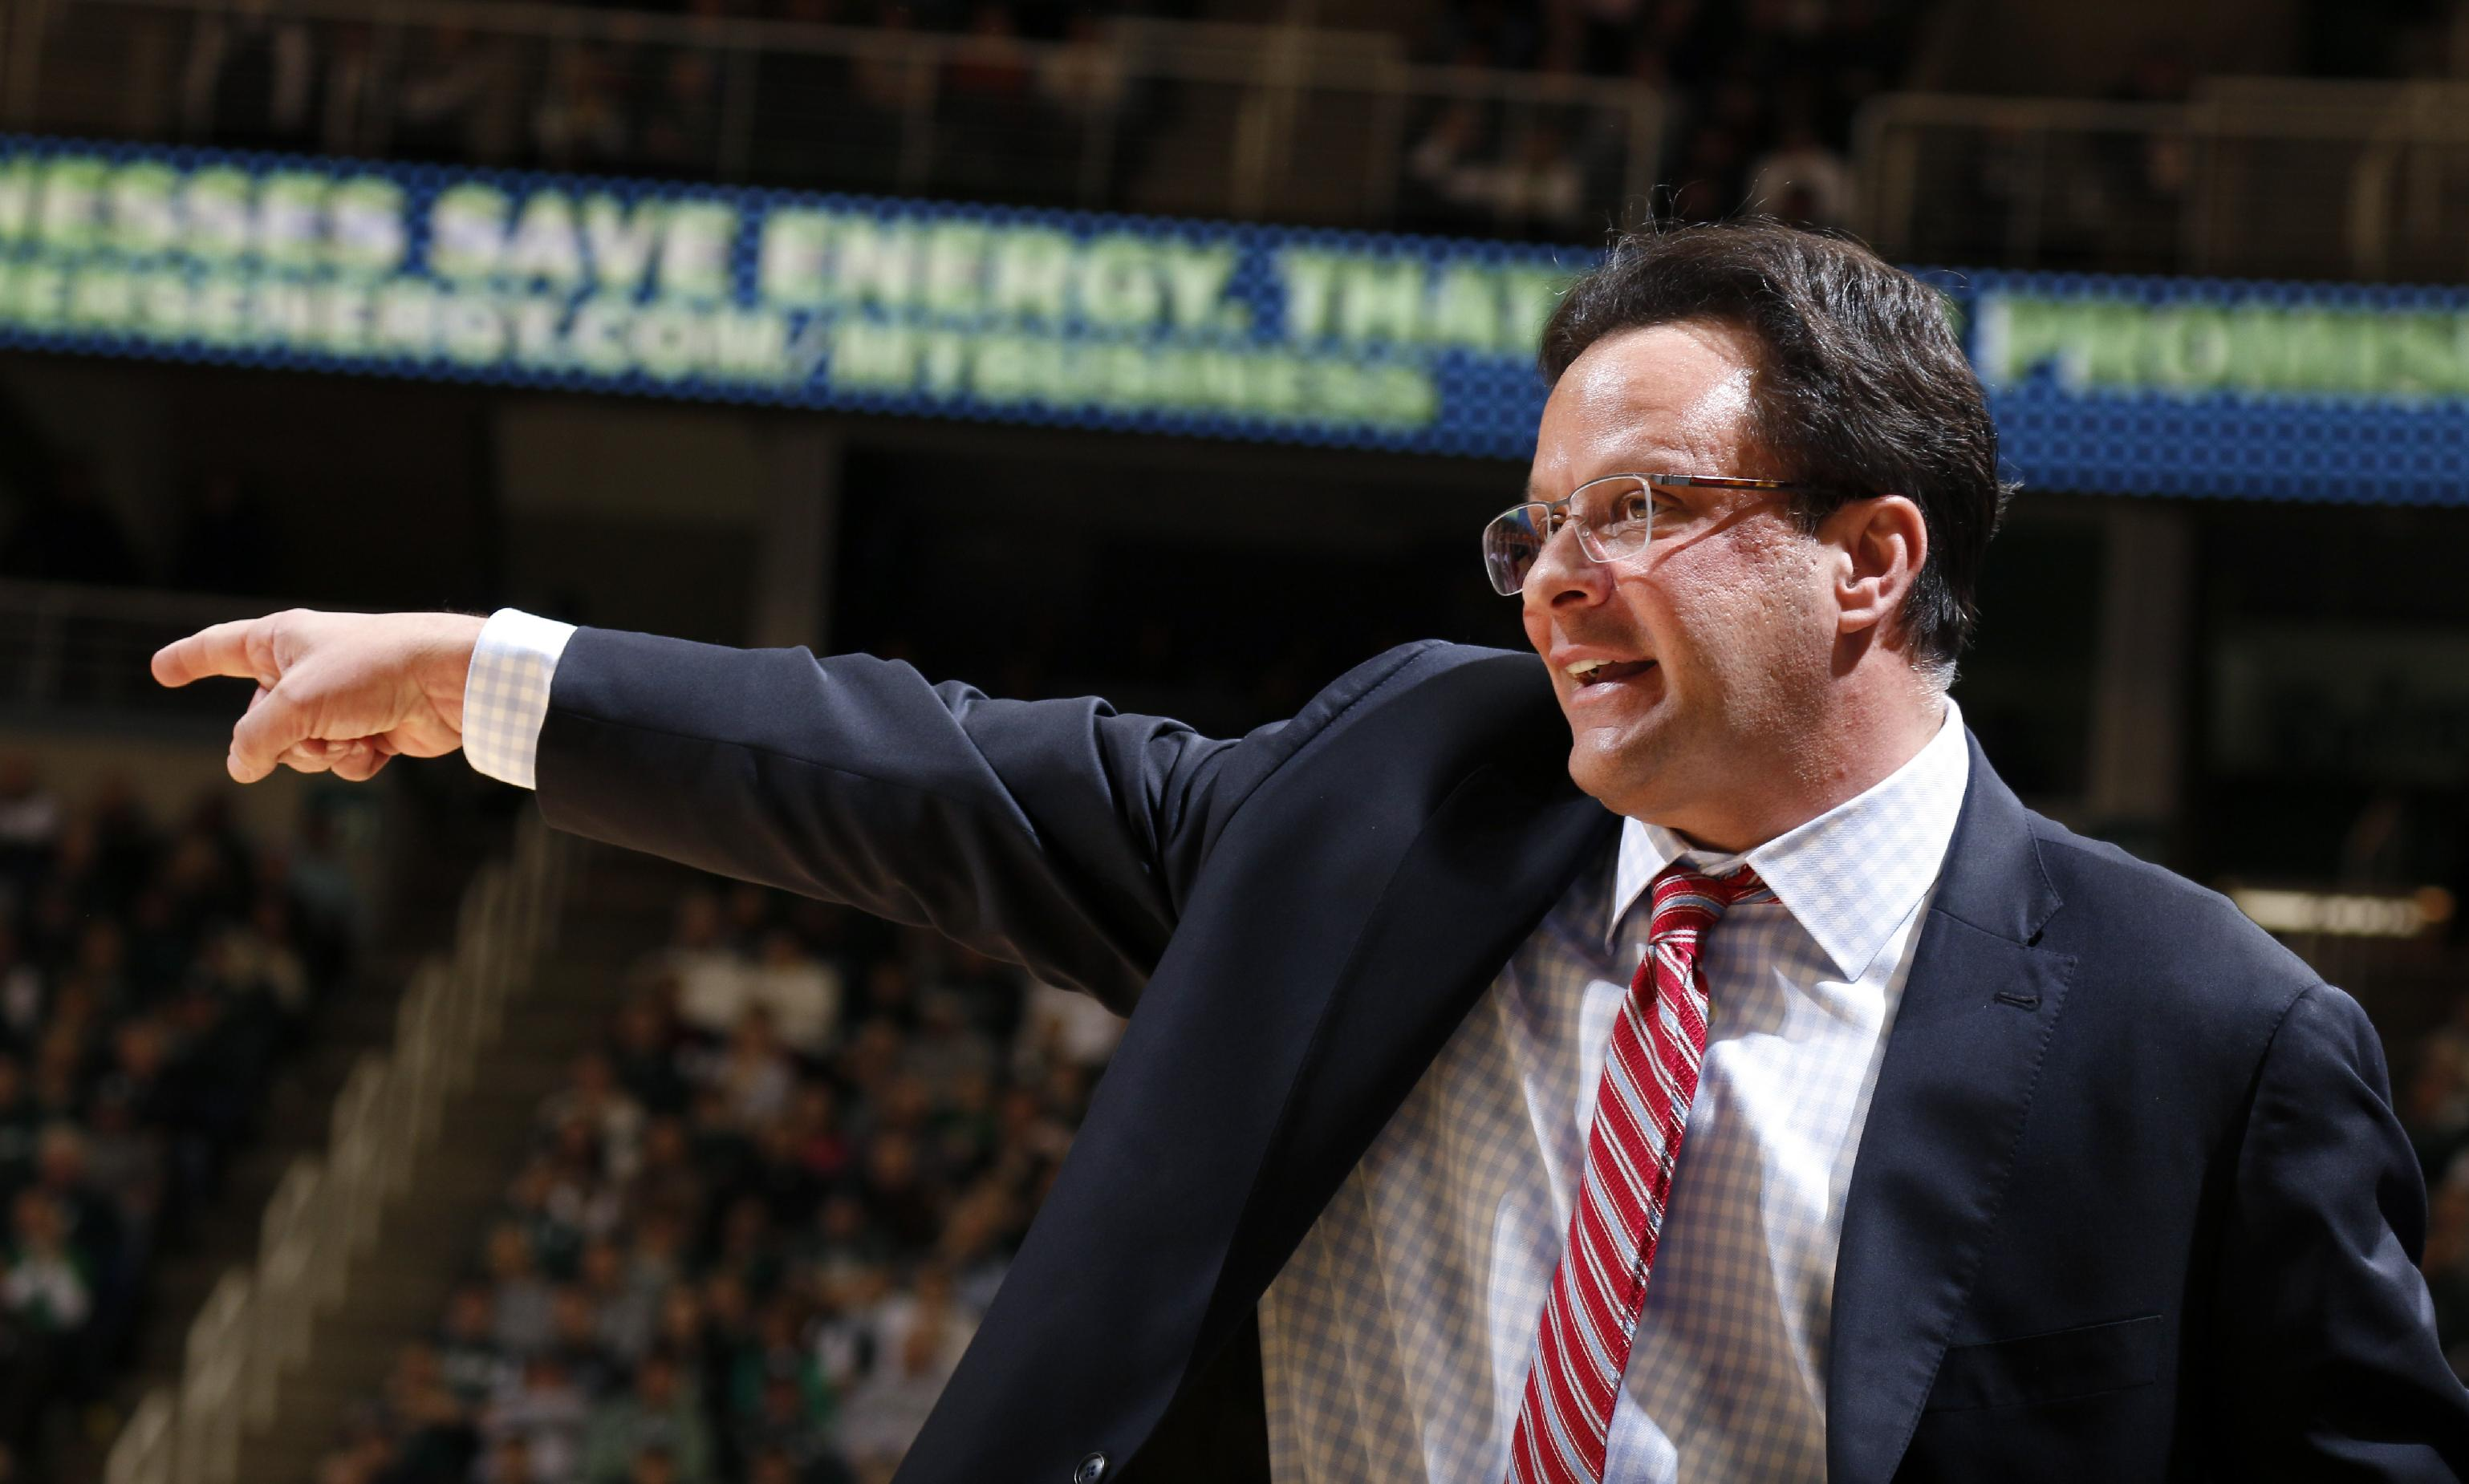 Indiana coach Tom Crean gives instructions during the first half of an NCAA college basketball game against Michigan State, Tuesday, Jan. 21, 2014, in East Lansing, Mich. Michigan State won 71-66